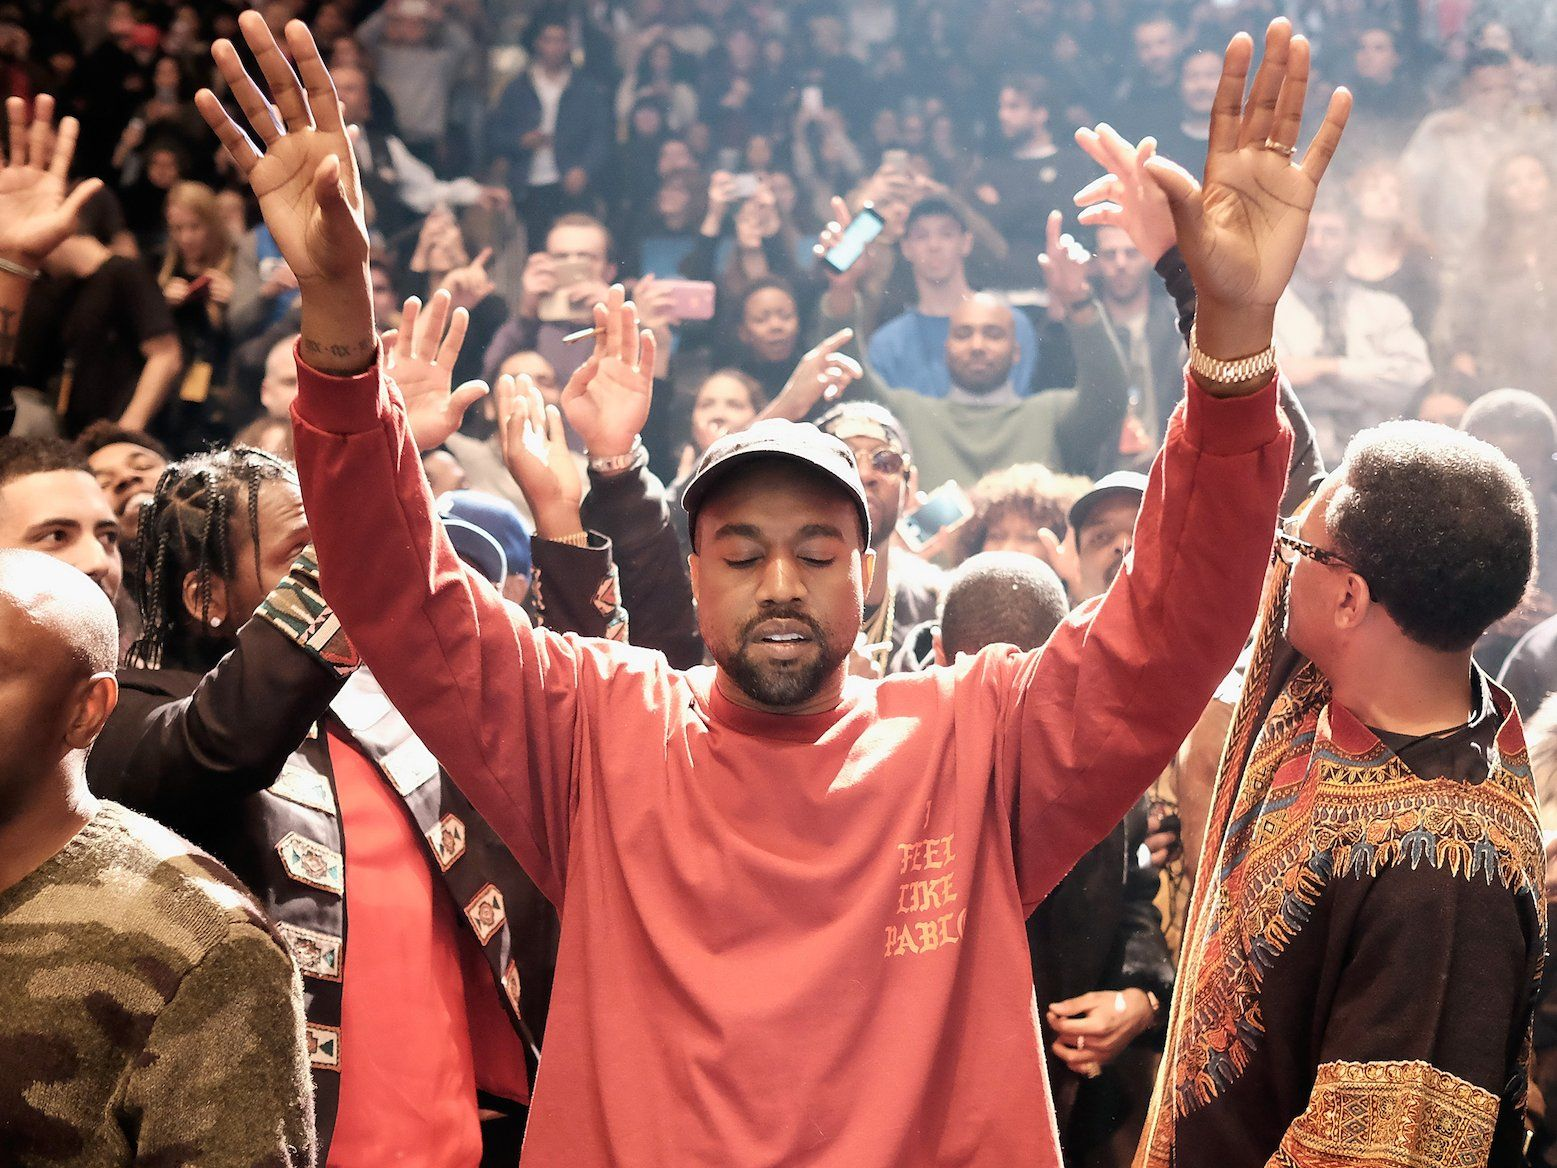 Kanye West New Album What Is Bipolar Disorder Kanye West Wallpaper Kanye West New Album Kanye West